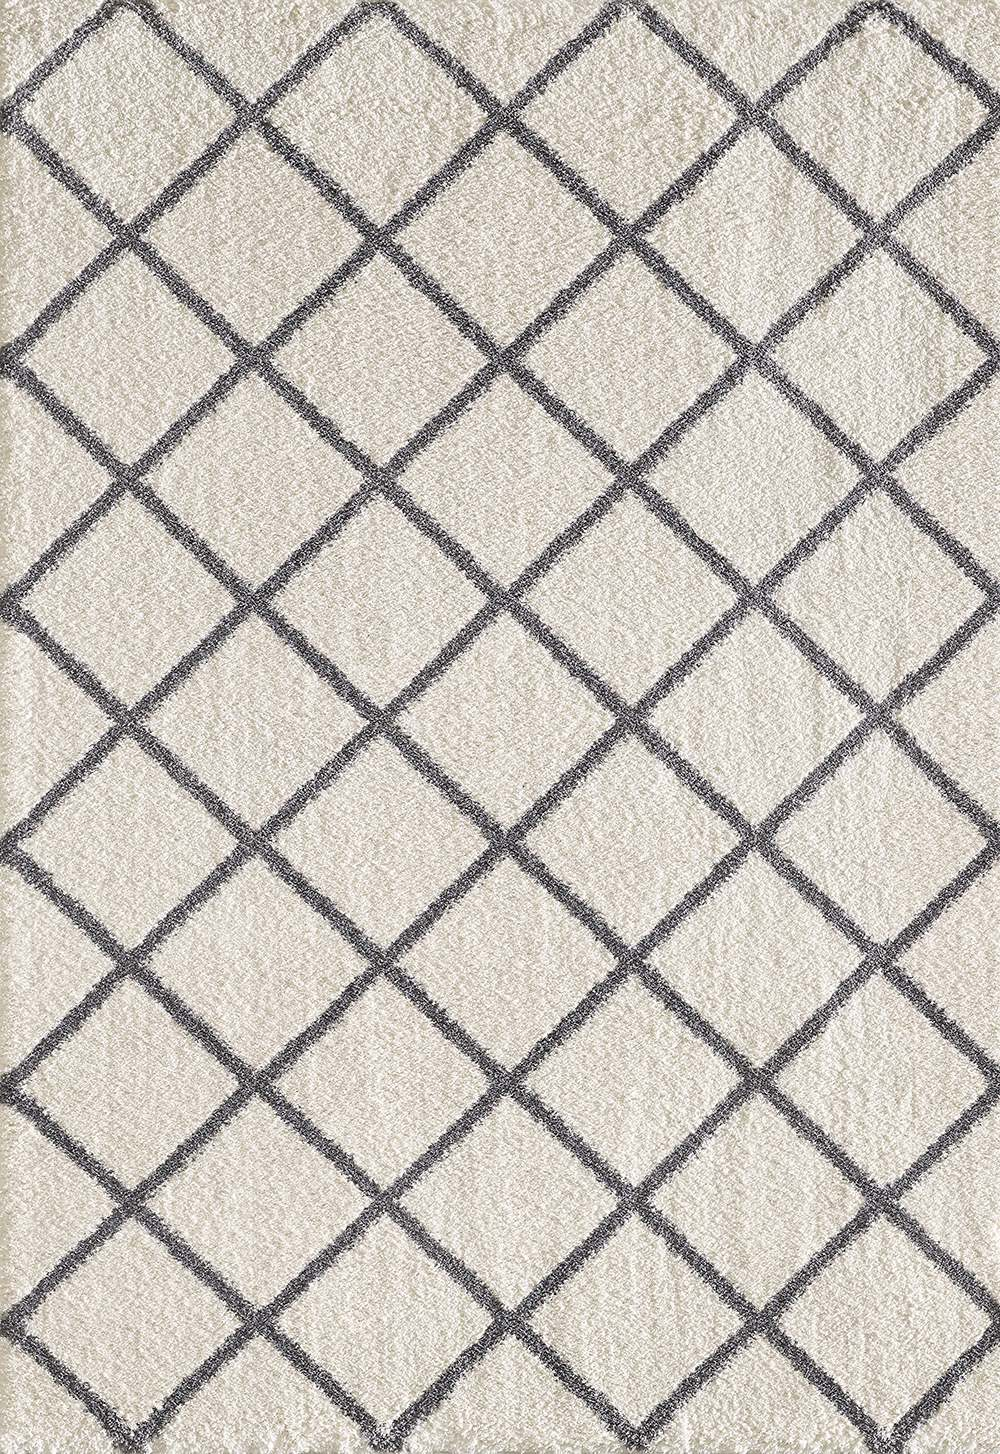 Dynamic Rugs Silky Shag Geometric Ivory/grey 5920 Area Rug